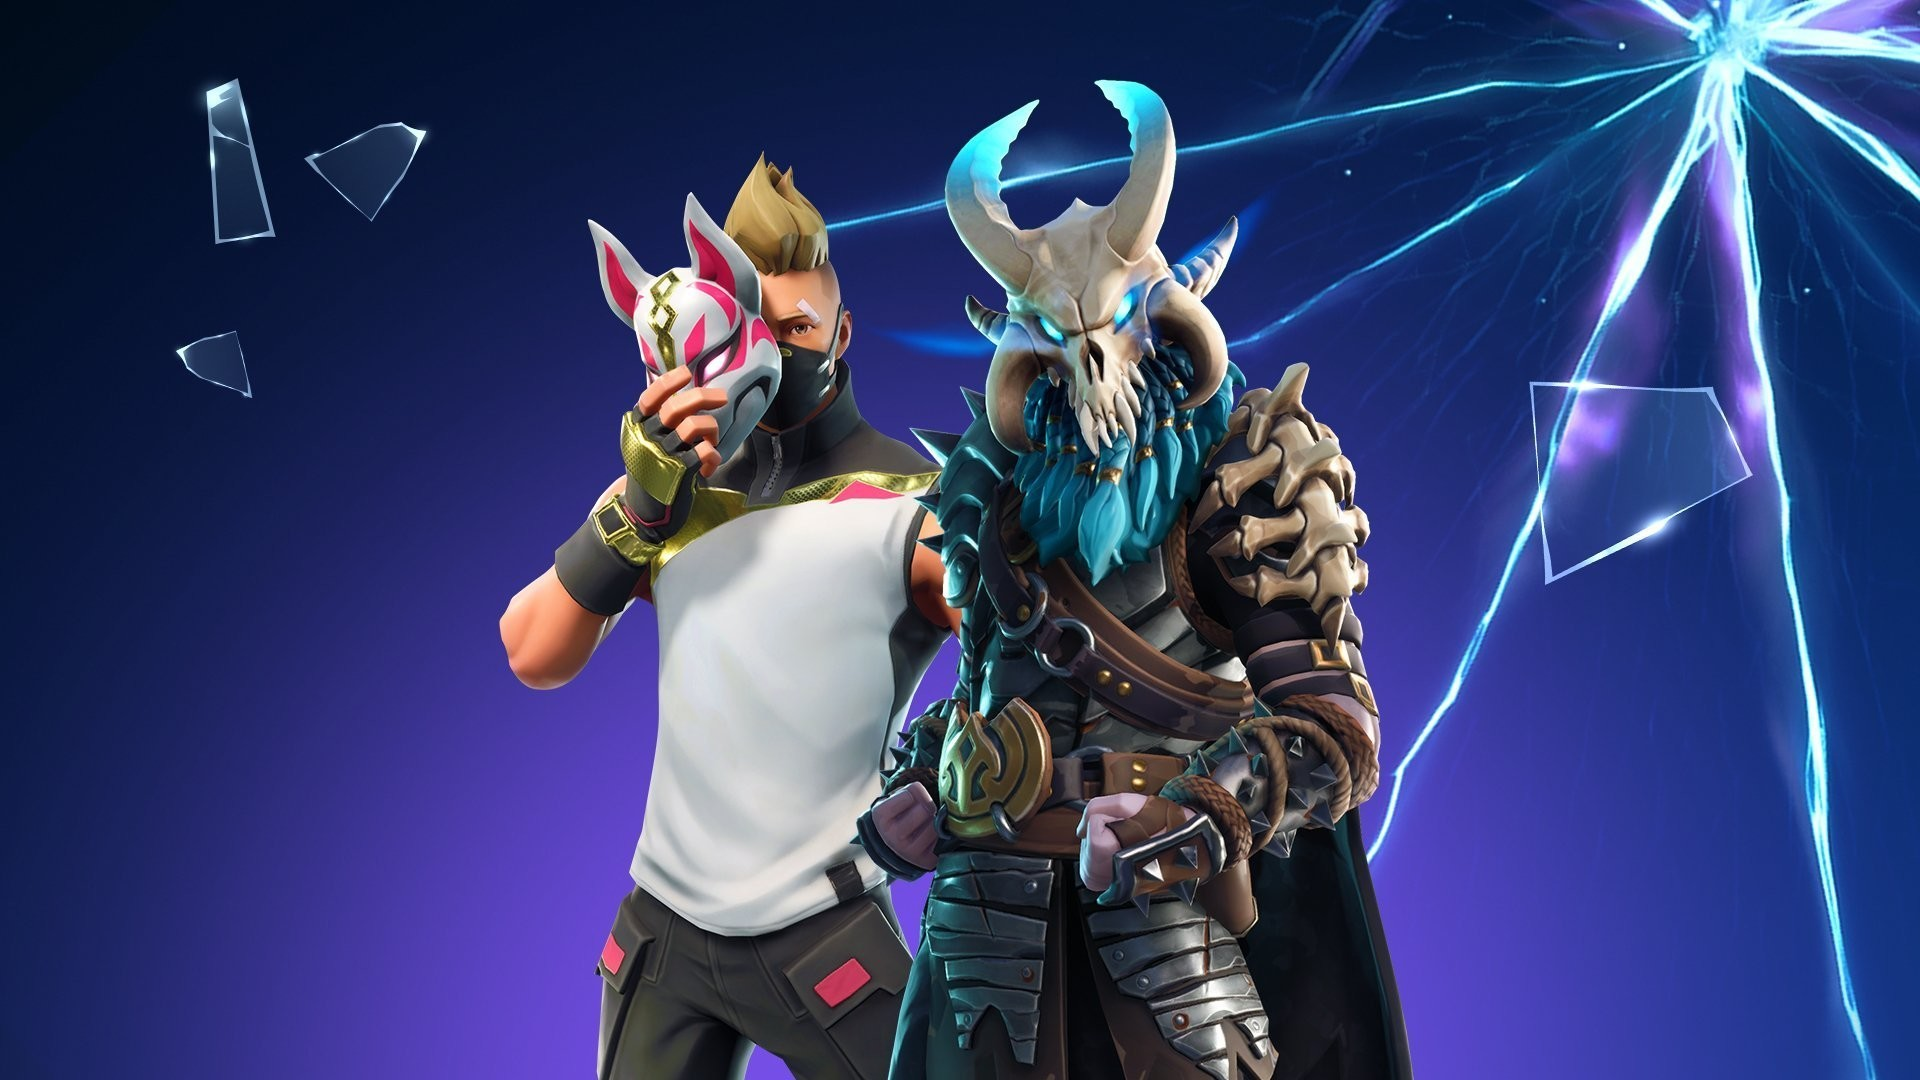 1920x1080 Fortnite Lightning Bolt Locations Season 5 Week 1 Challenges IGN